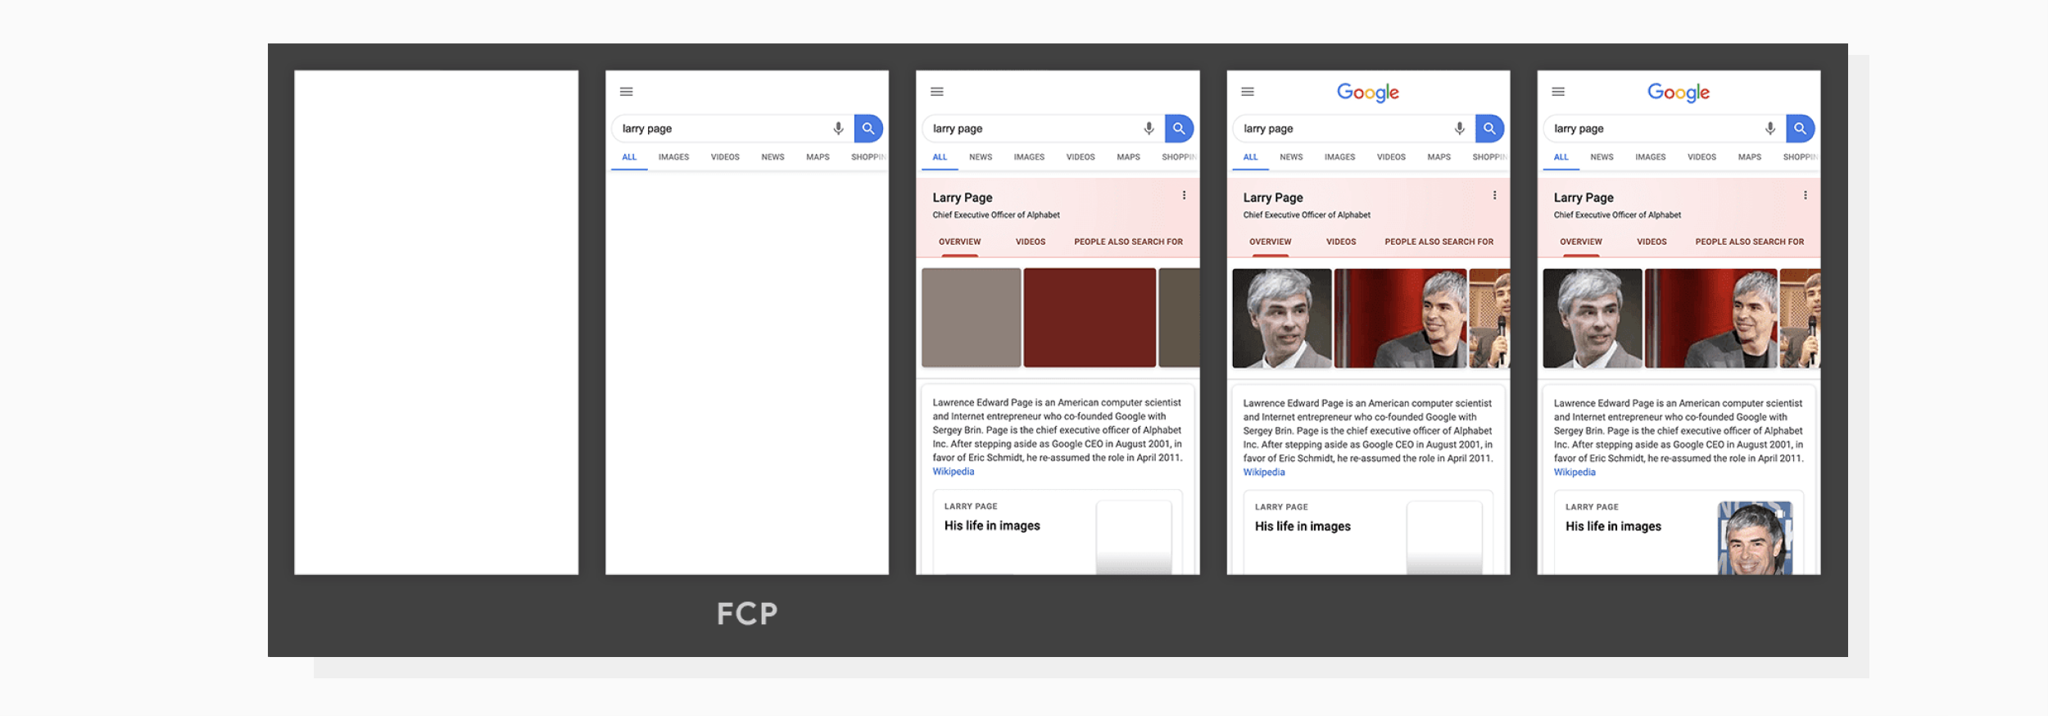 Visual demonstration of FCP (screenshot sequence)